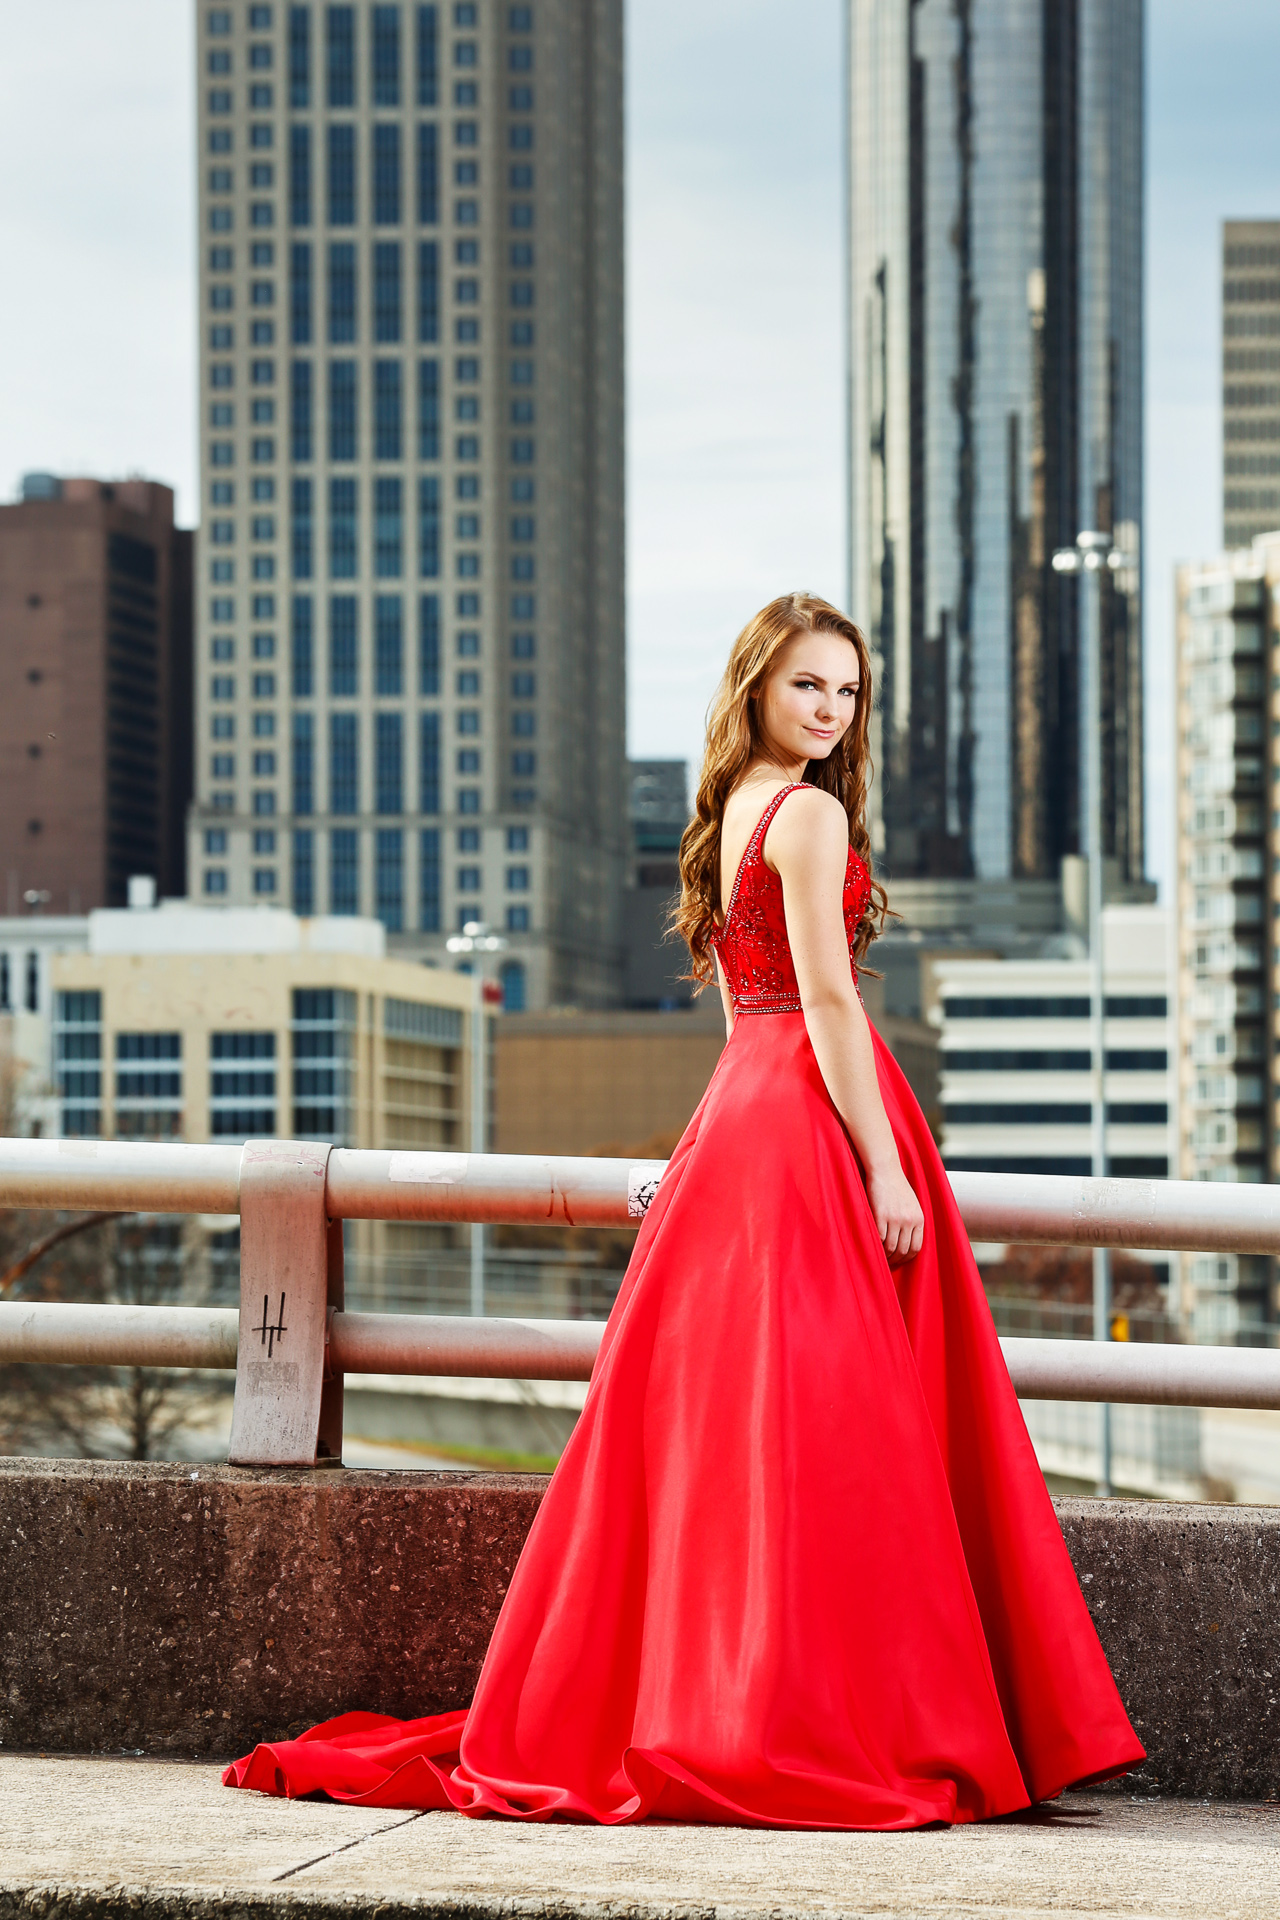 Editorial Senior Photoshoot with a natural beauty in a red dress. Photographed overlooking the skyline of Atlanta.